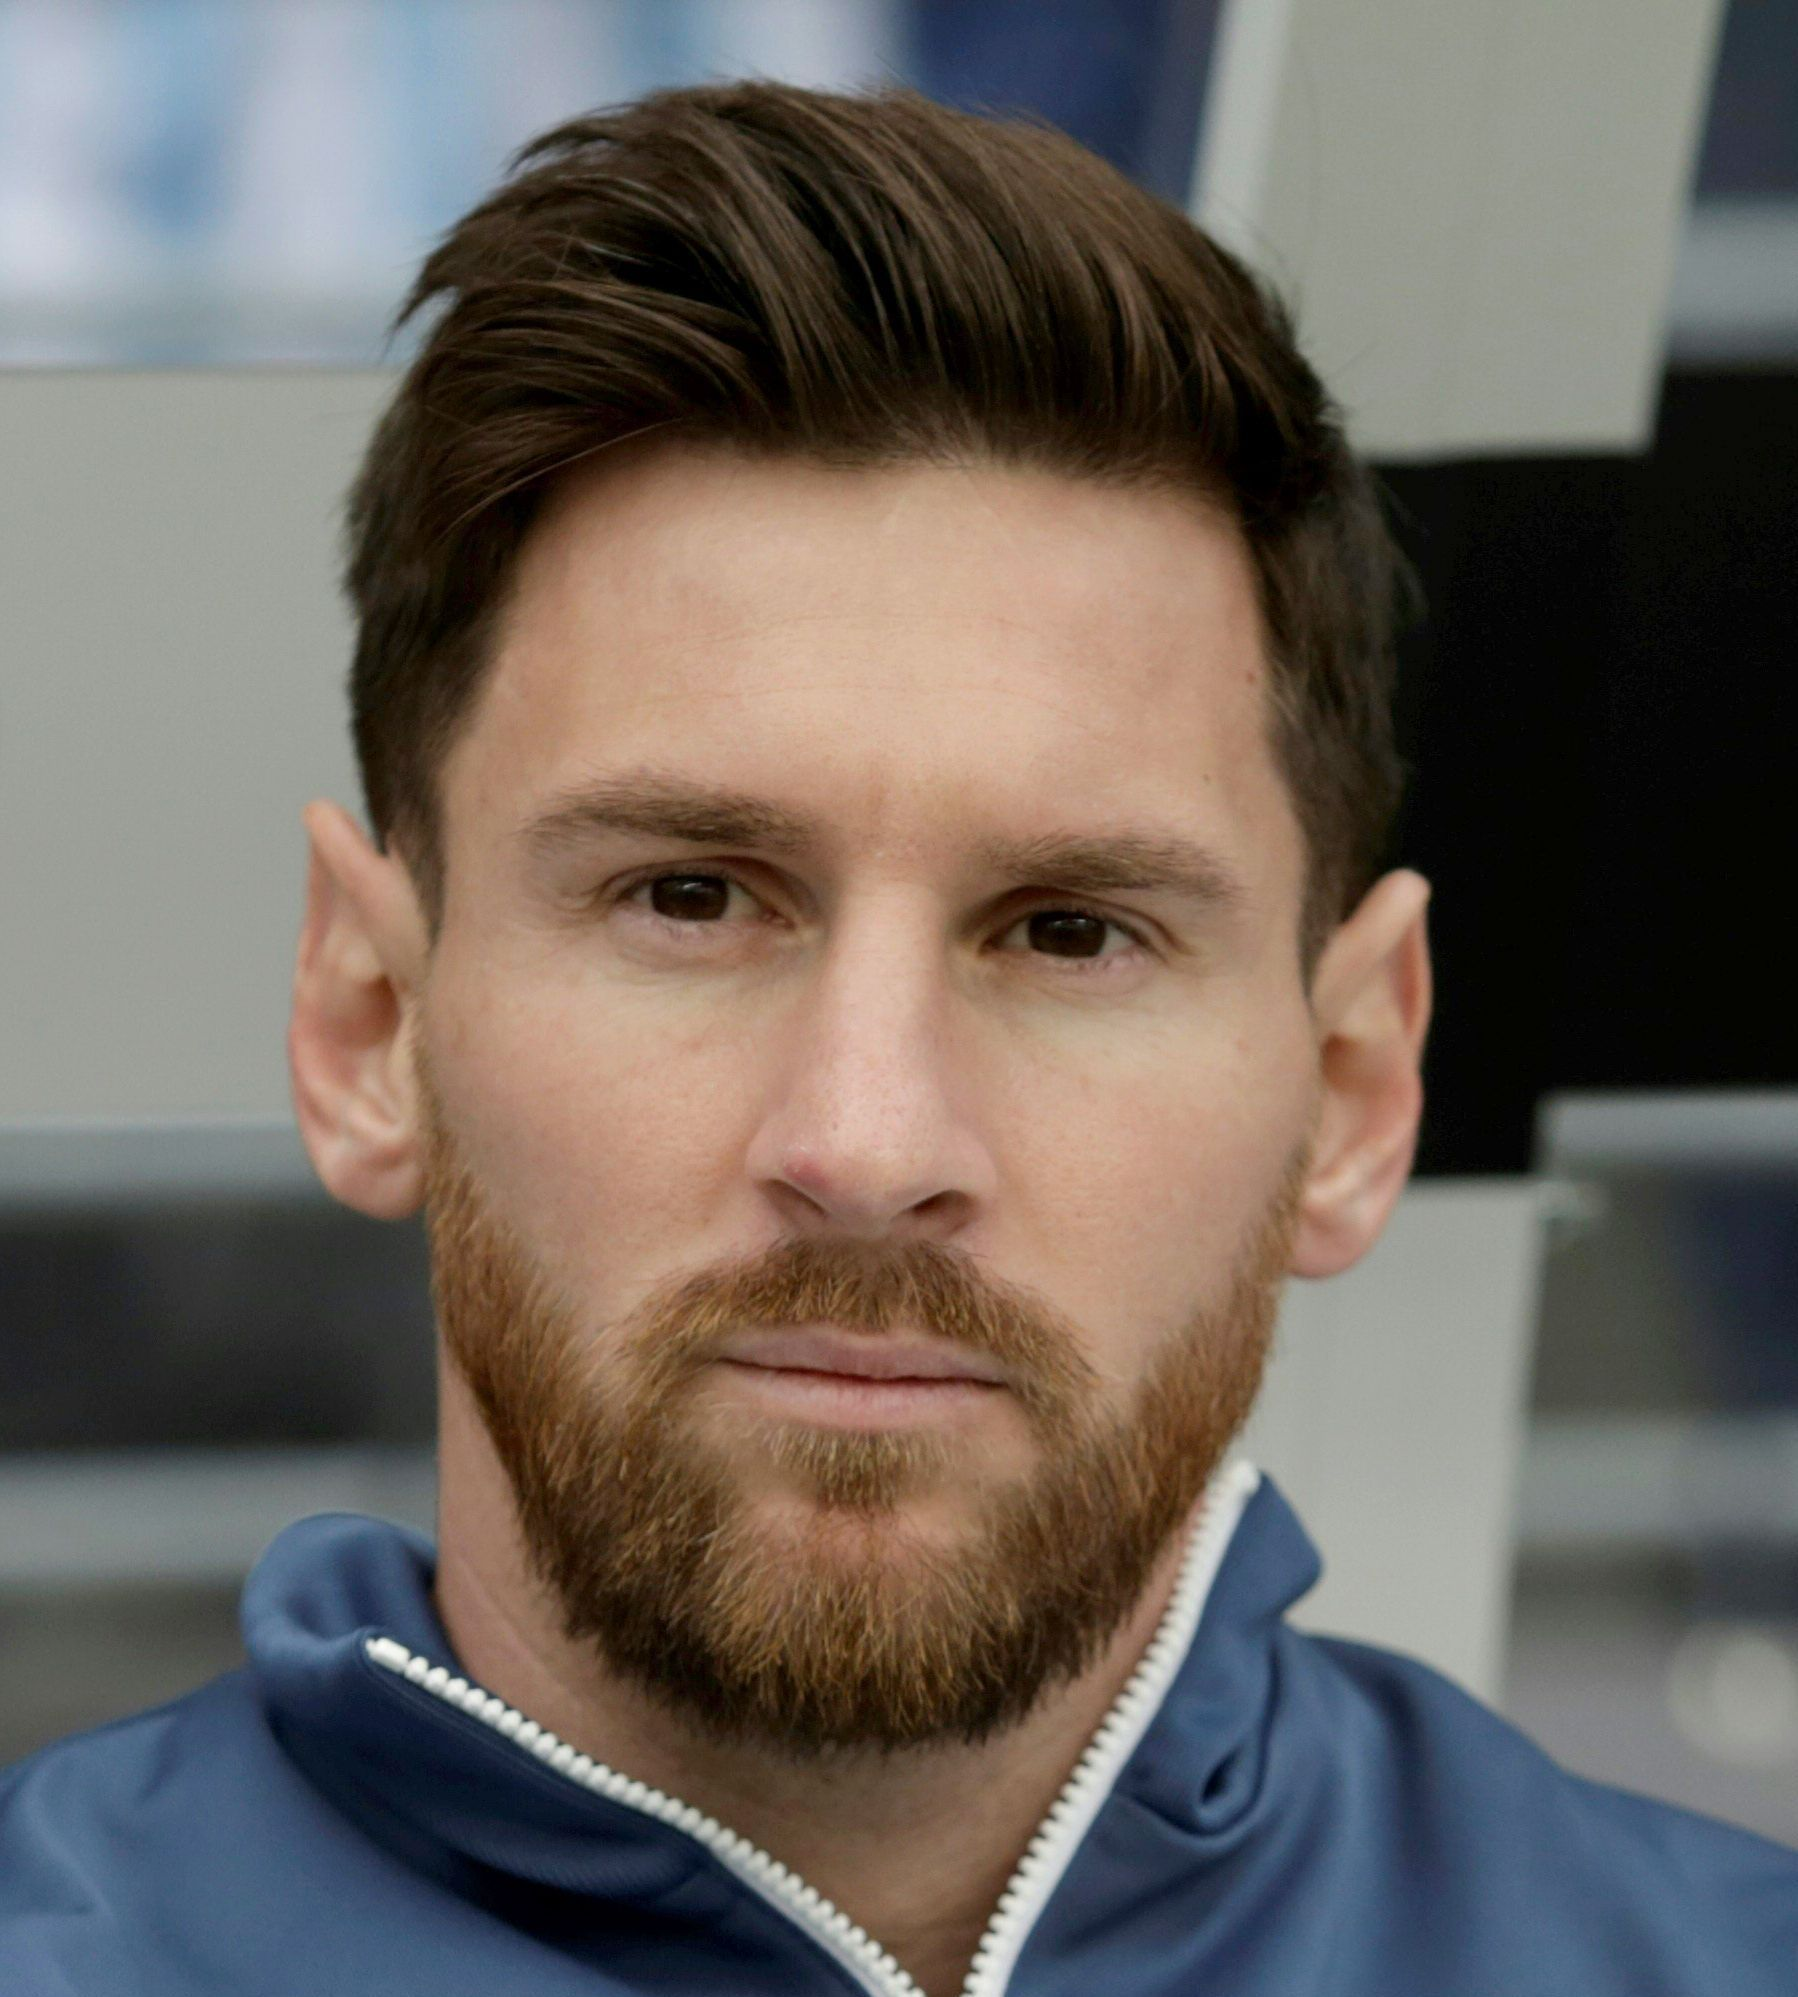 Lionel Messi Haarschnitt Frisuren Trends In 2020 Lionel Messi Haircut Boys Haircuts Cool Hairstyles For Men